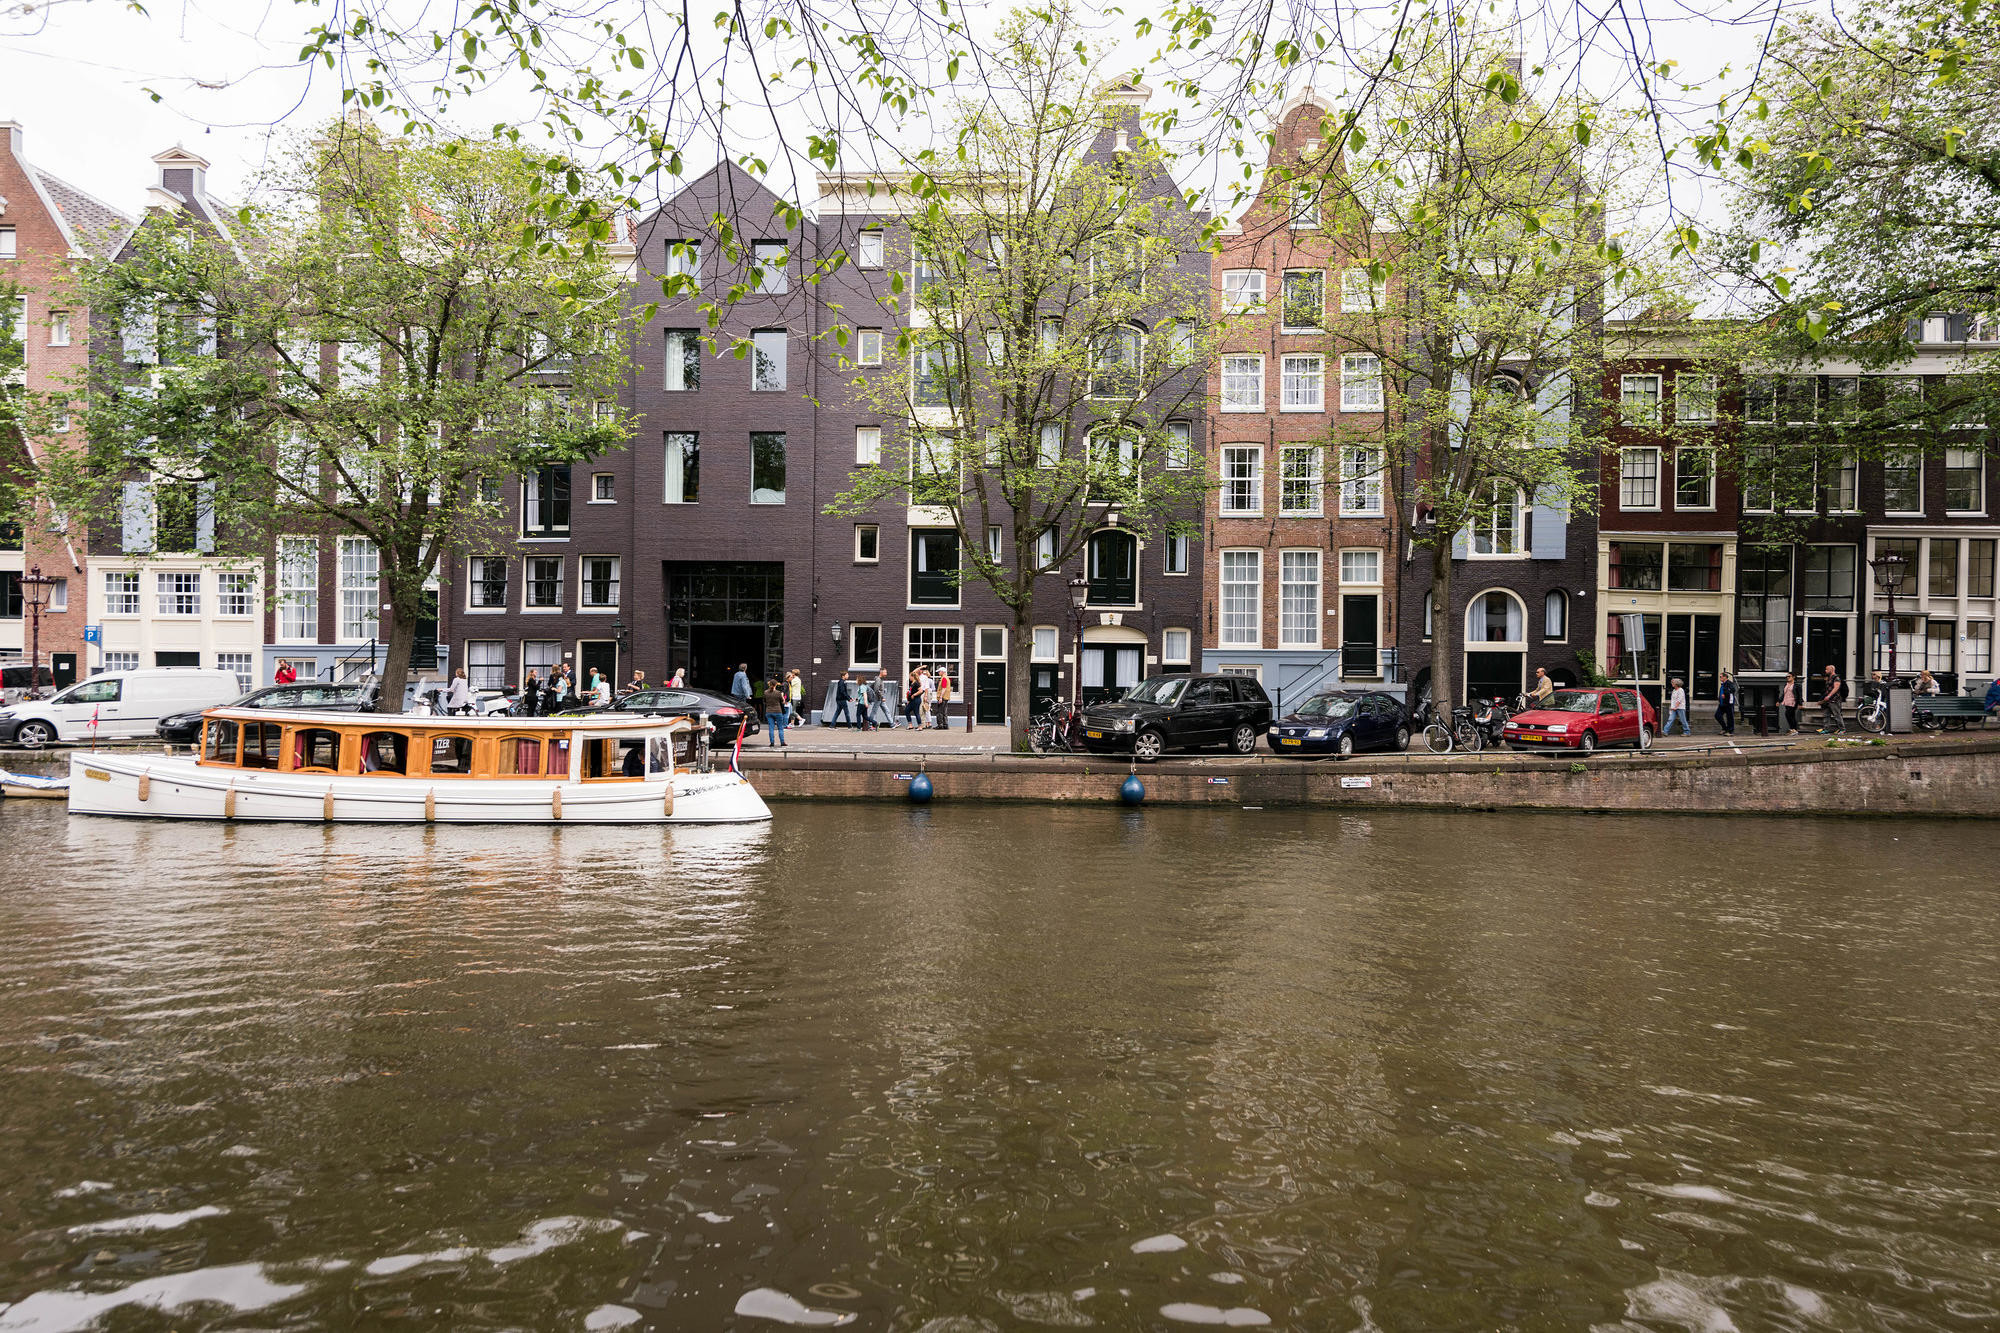 Canal and view of the Pulitzer Hotel with boats in Amsterdam